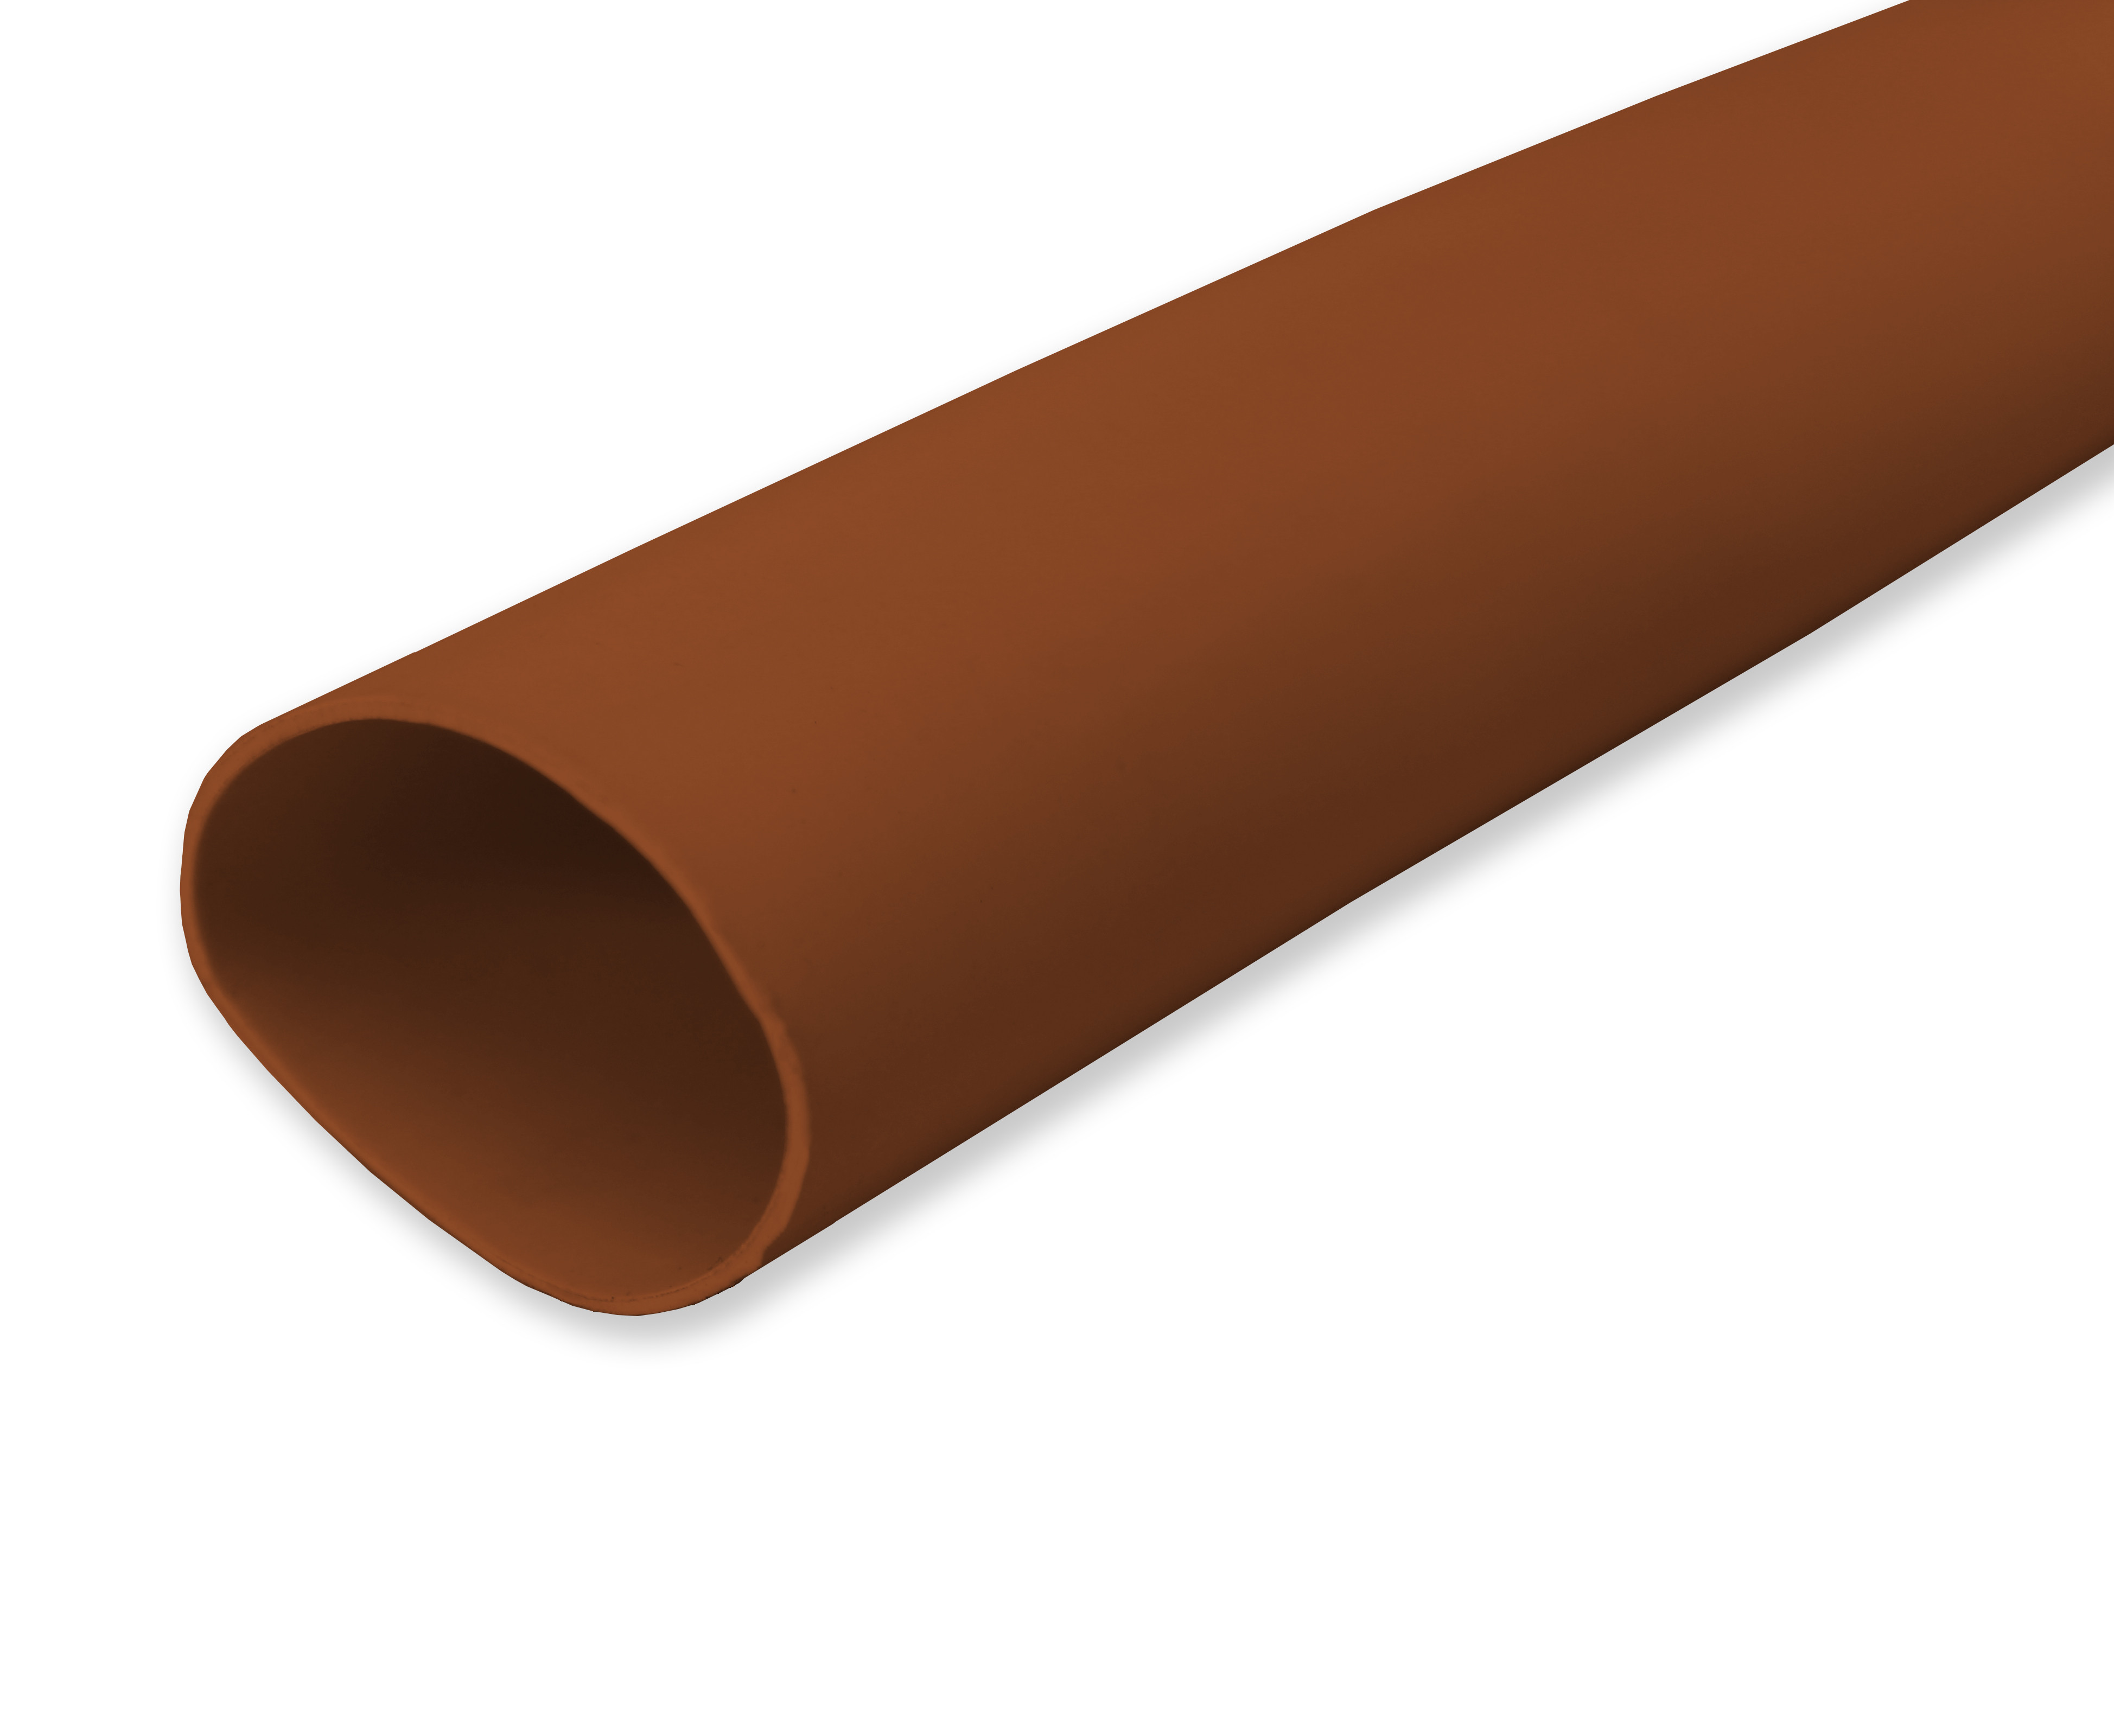 Brown PVC Sleeving size 20.0mm